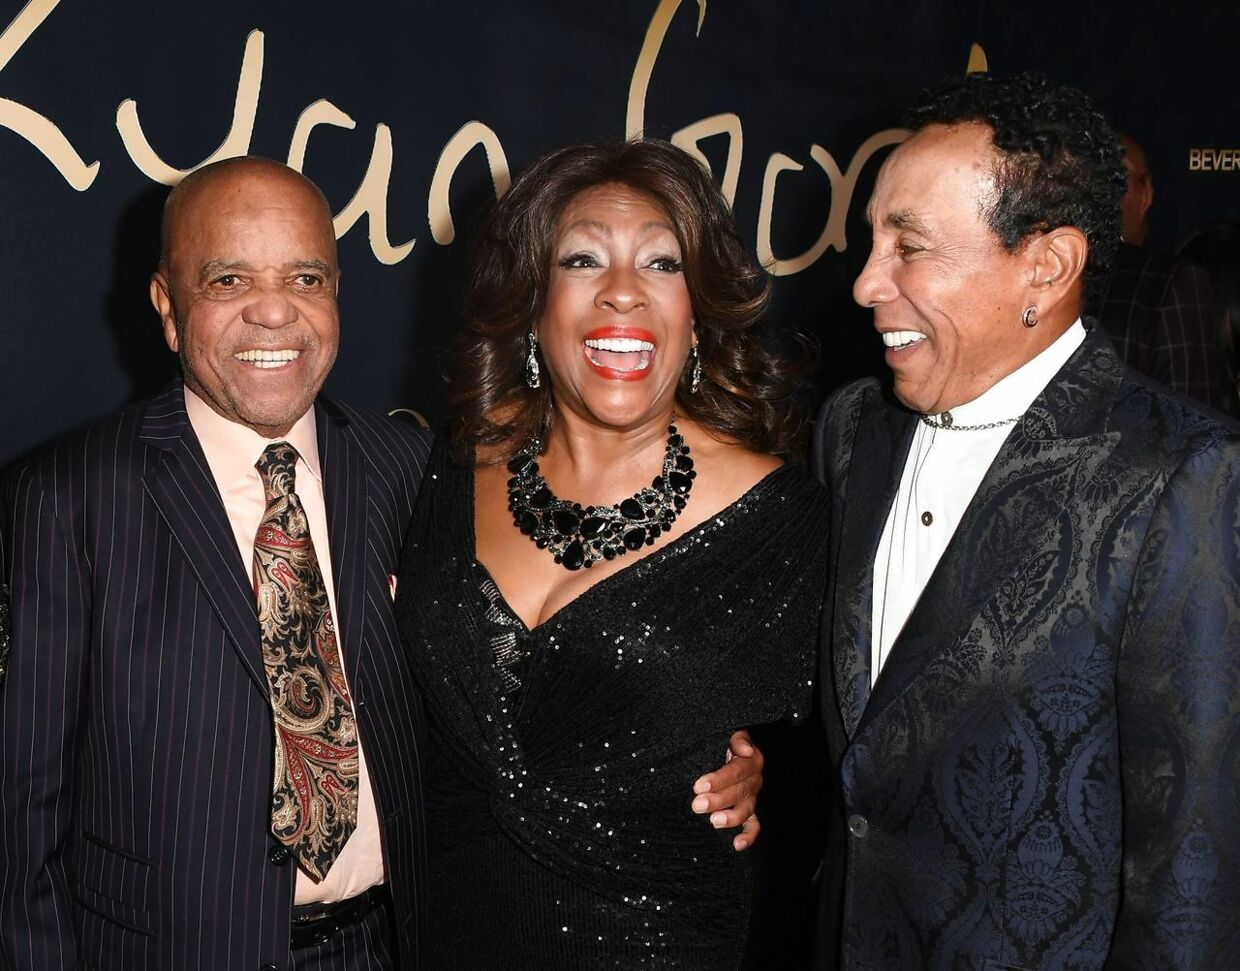 (FILES) In this file photo founder of the Motown record label Berry Gordy (L), singer from The Supremes Mary Wilson (C) and singer/songwriter Smokey Robinson arrive for the Ryan Gordy Foundation 60 Years of Motown Celebration at the Waldorf Astoria in Beverly Hills on November 11, 2019. - The death of singer Mary Wilson, co-founder of the trio Supremes, has just been announced by her publicist Jay Schwartz. She died Monday night, February 8, at her home in Las Vegas. She was 76 years old. (Photo by Mark RALSTON / AFP)